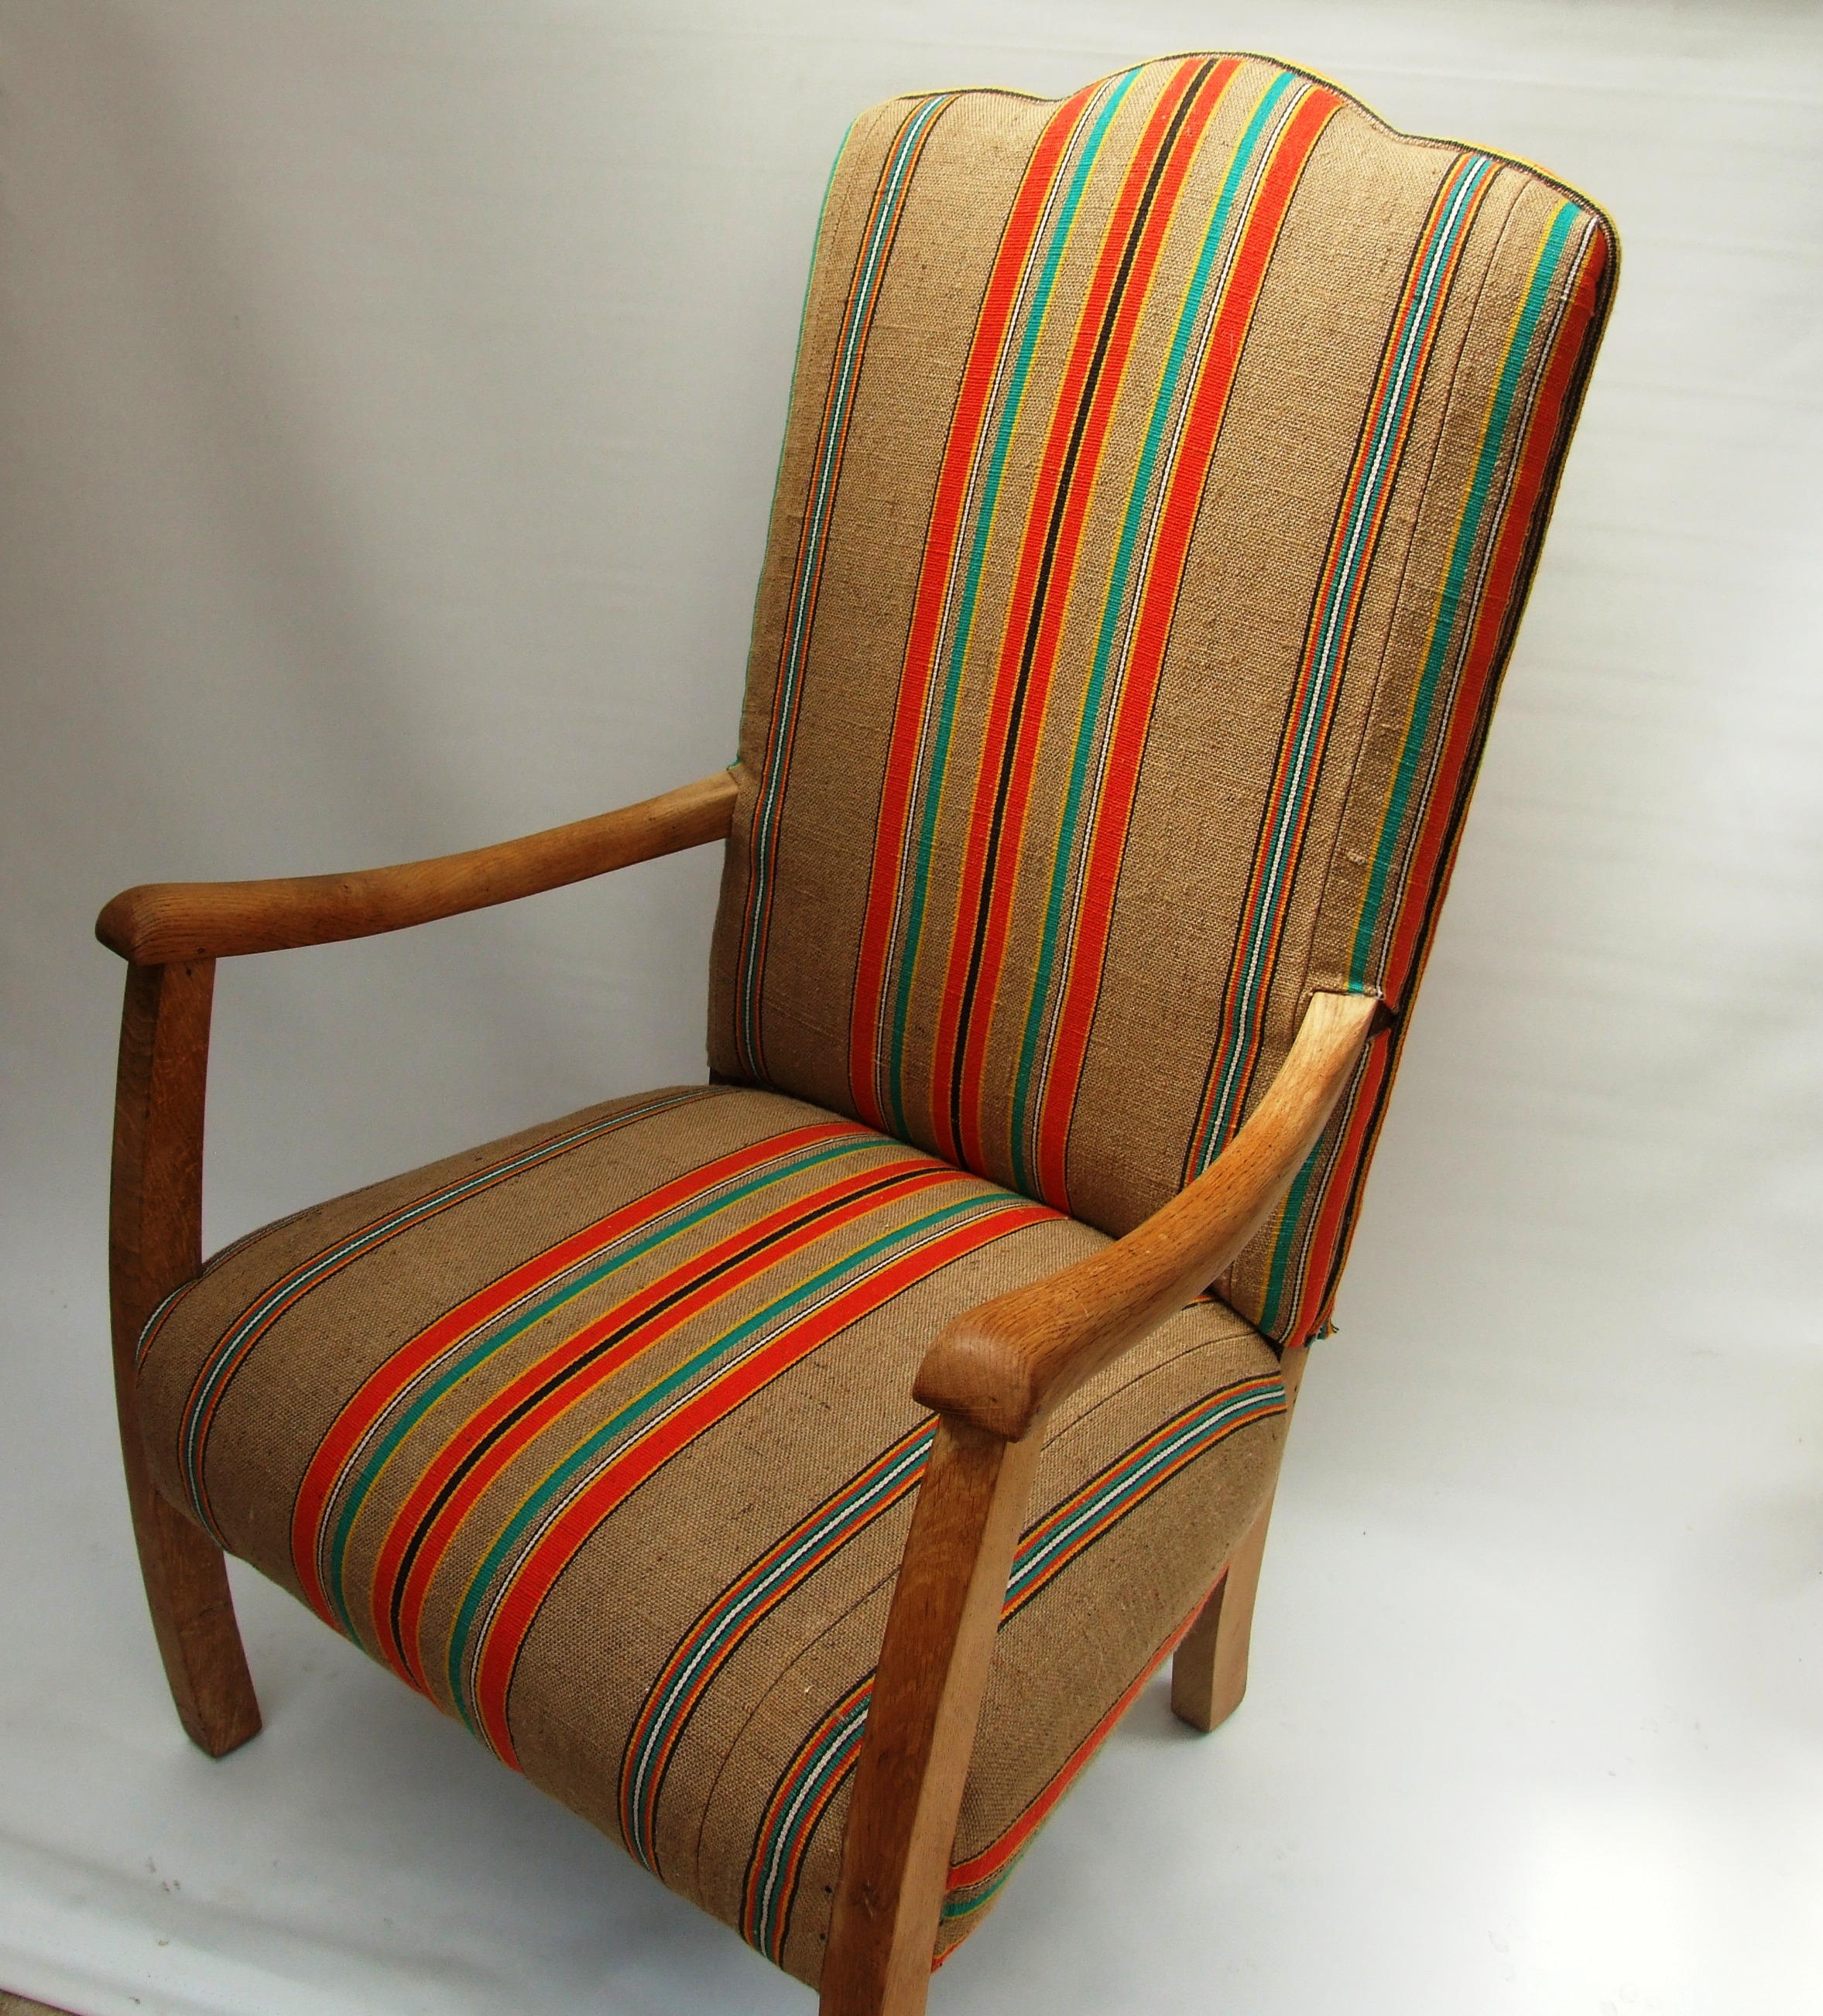 1930s Fireside Chair recovered in vintage french burlapMaud Chairs